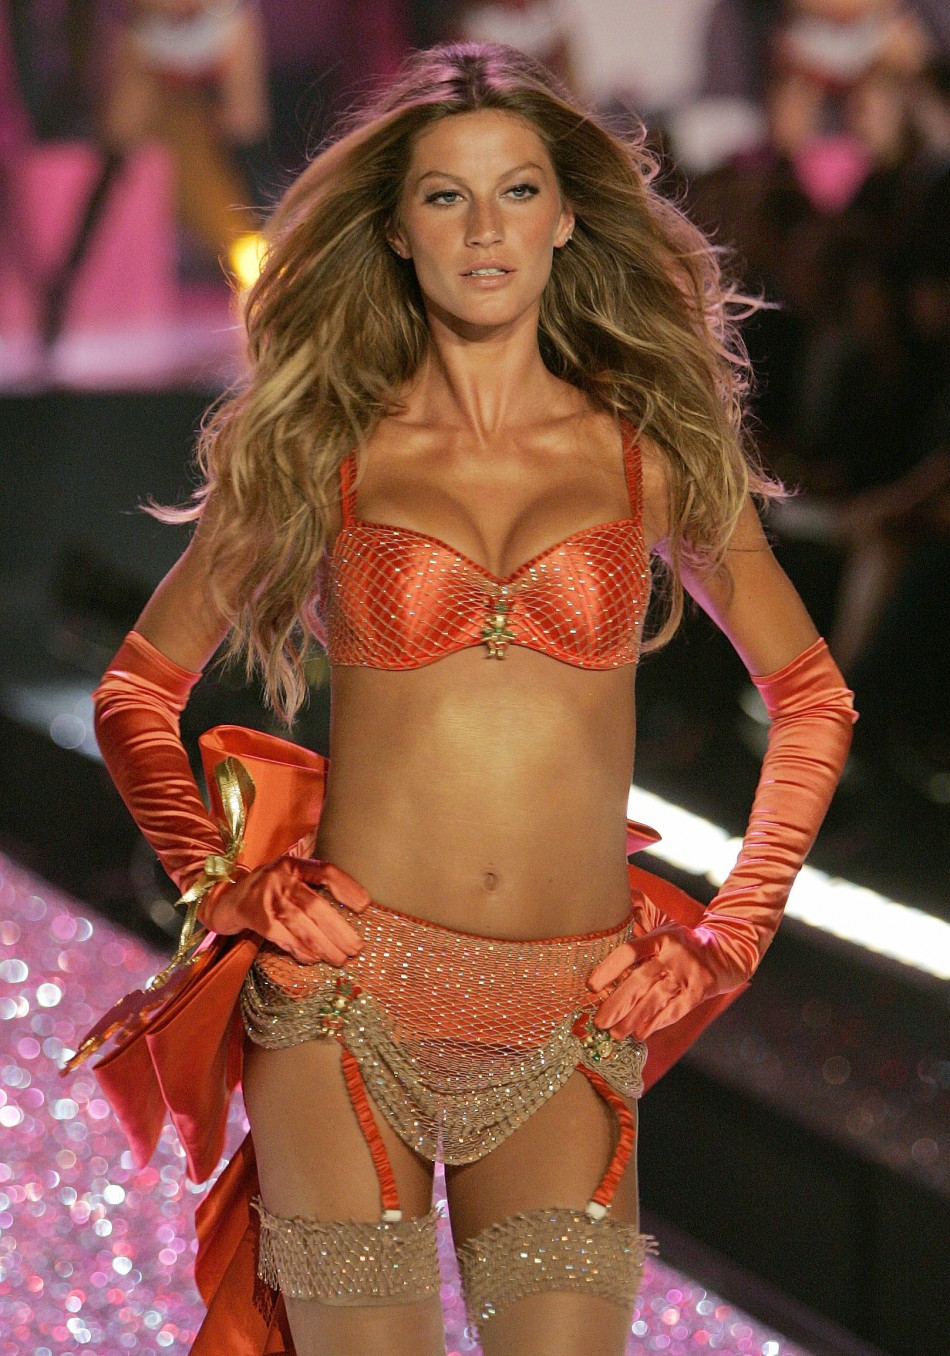 Supermodel Gisele Bundchen poses on the runway during the Victoria's Secret Fashion show in New York..